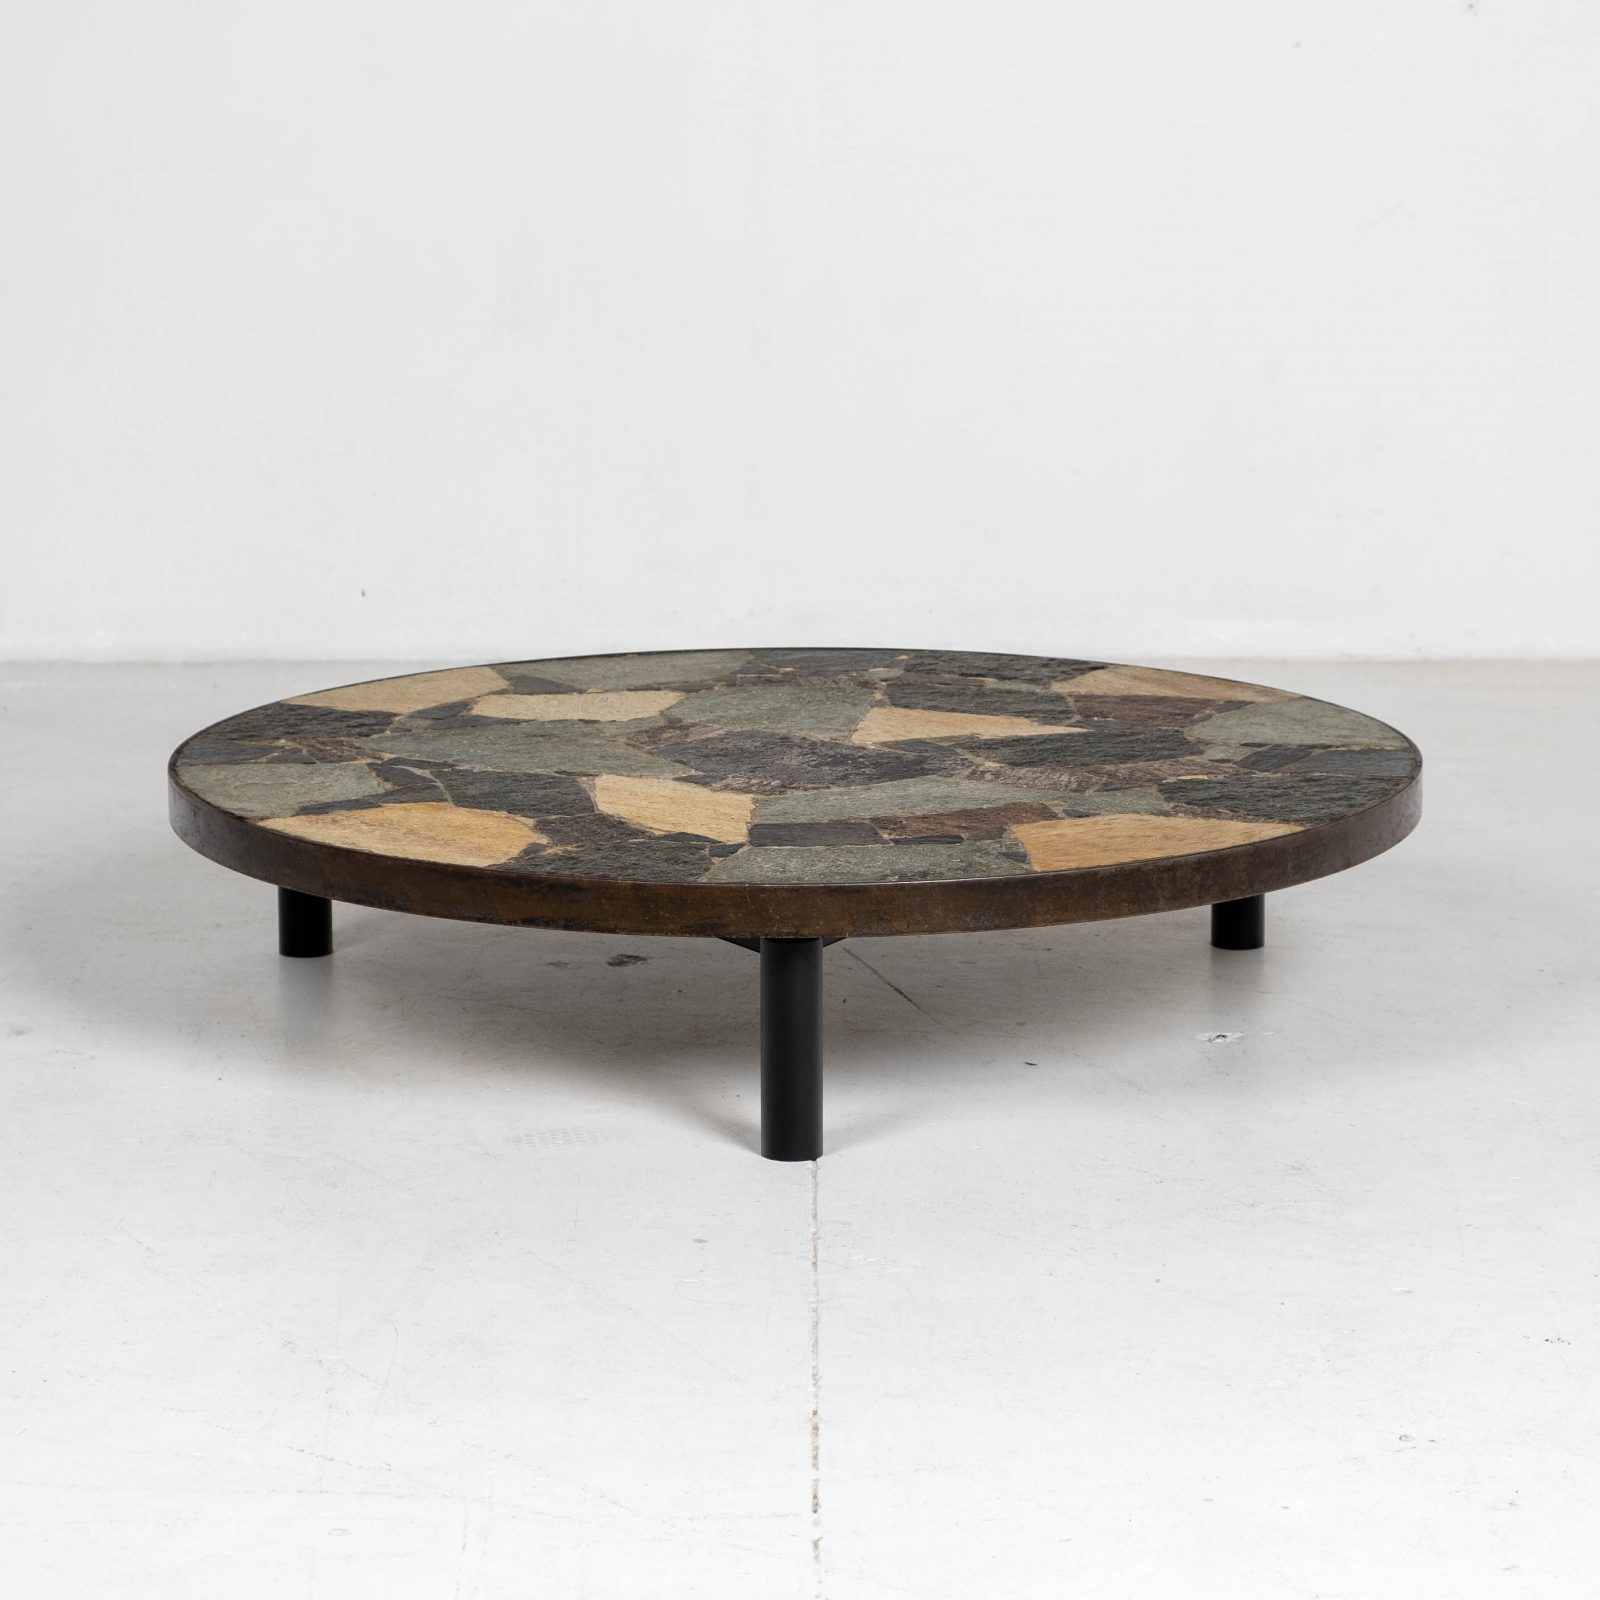 Circular Coffee Table In The Style Of Paul Kingma With Mosaic Slate Top And Metal Edge, 1970s, The Netherlands Hero